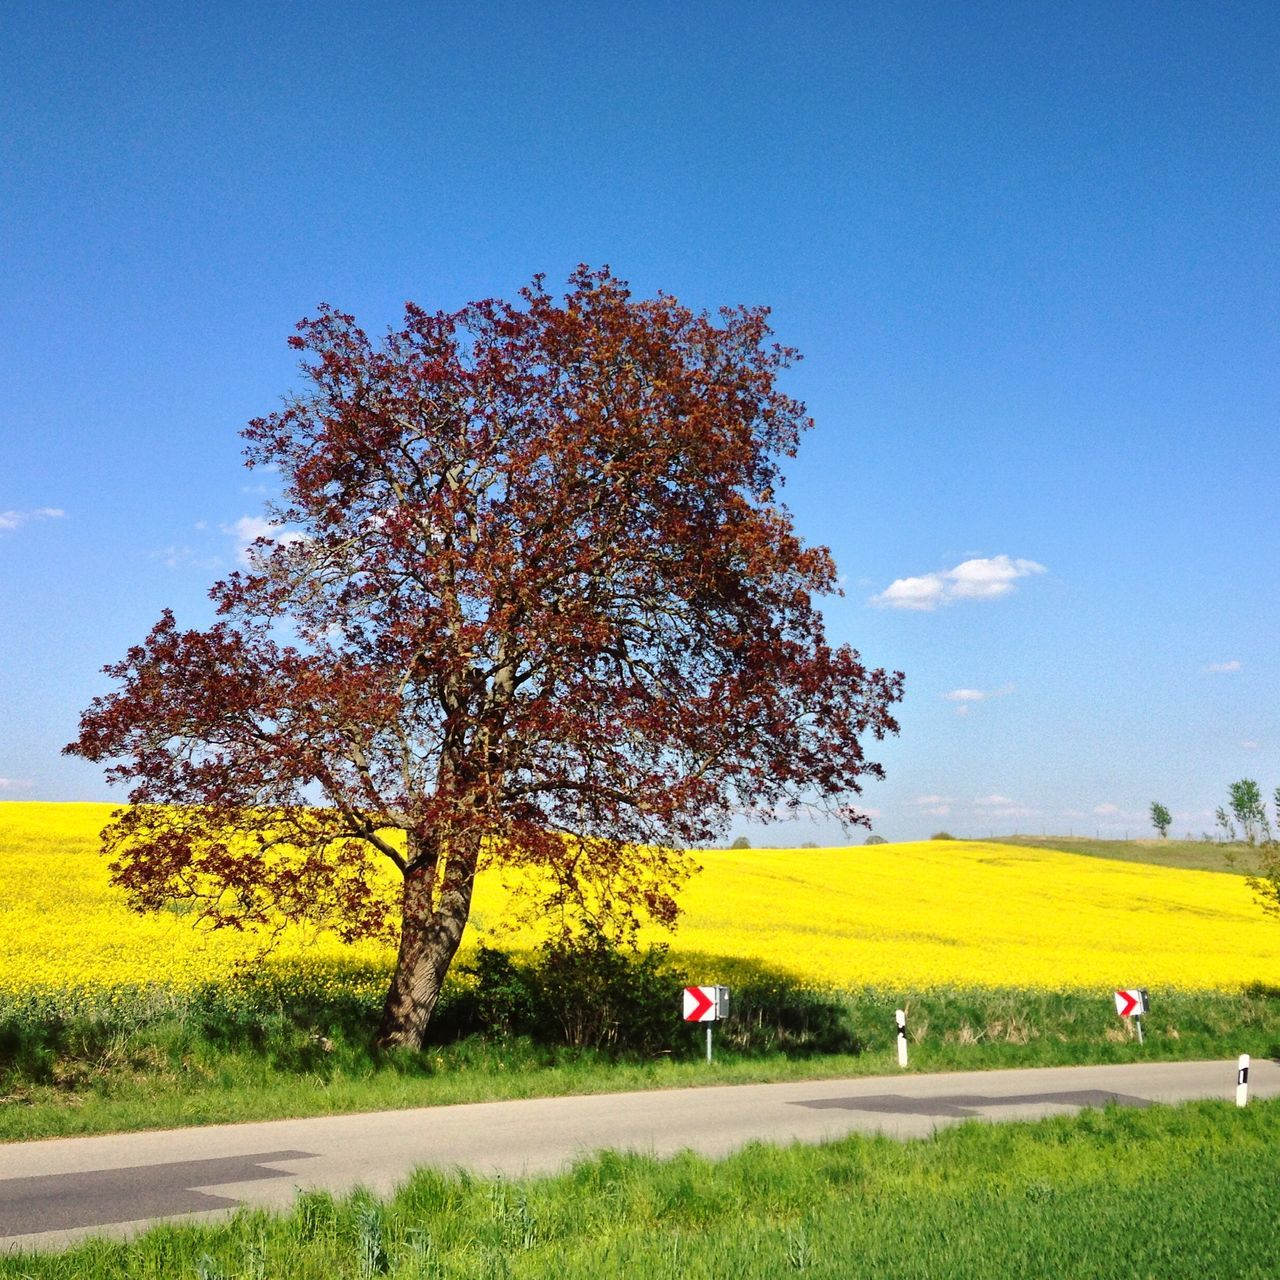 tree, grass, field, nature, growth, landscape, beauty in nature, yellow, sky, scenics, day, tranquility, no people, outdoors, clear sky